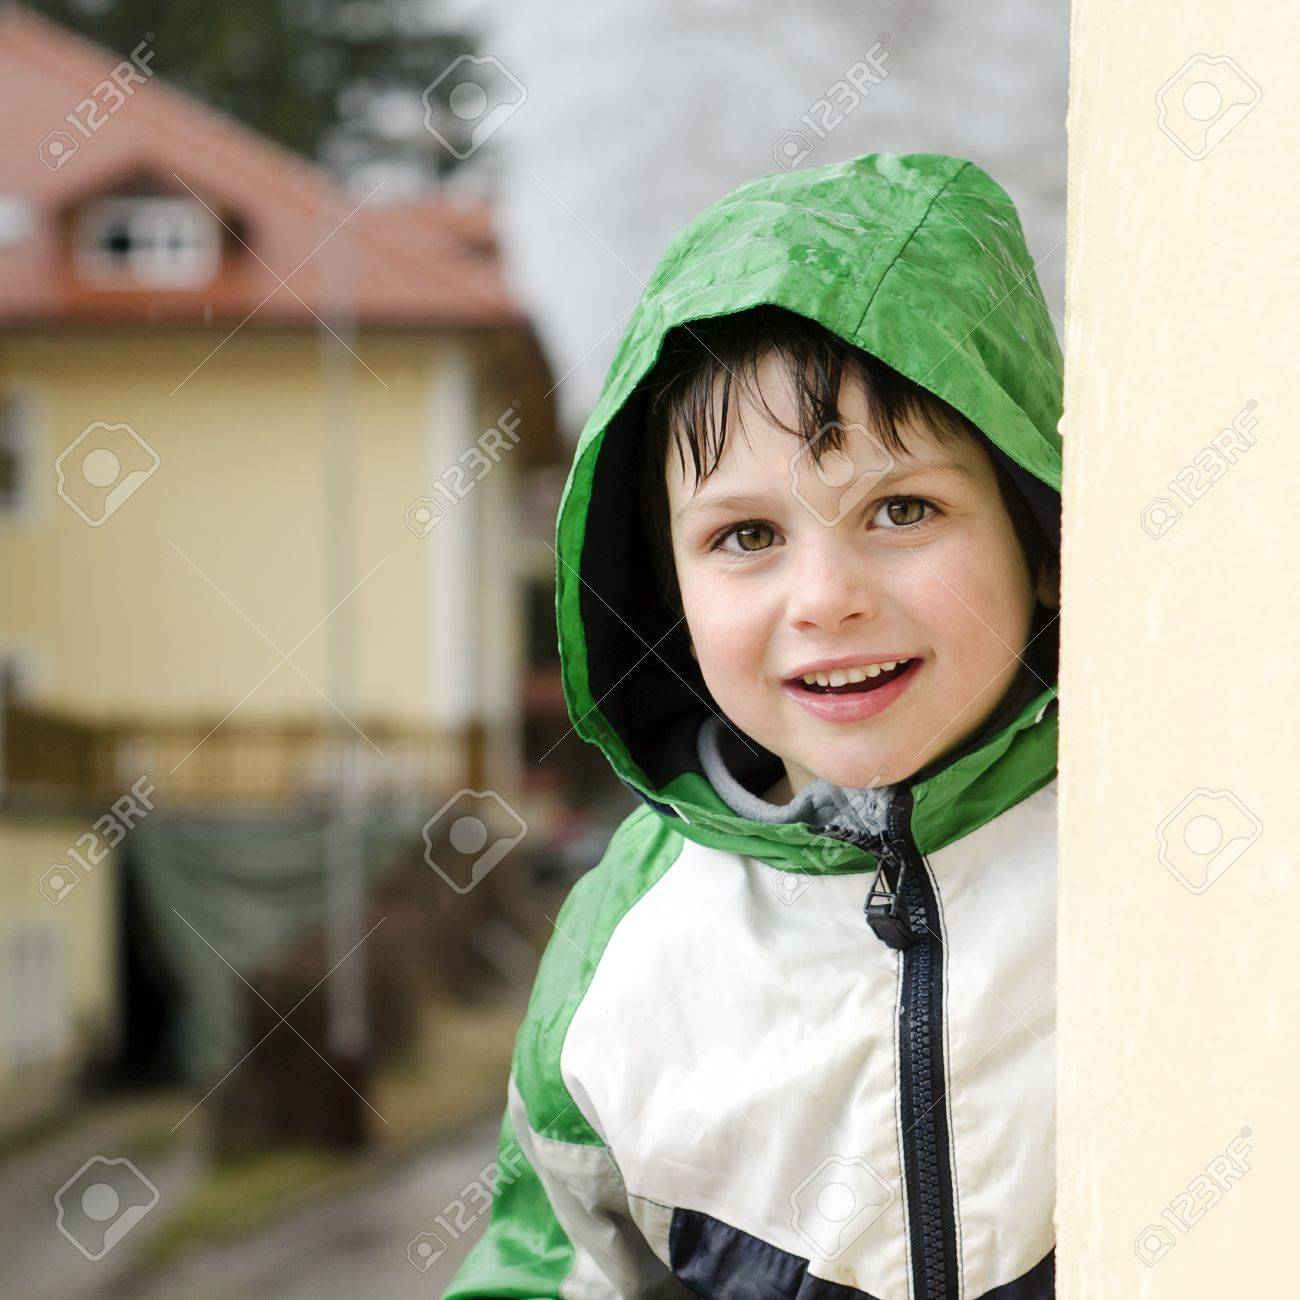 3a5d25dc9 Portrait Of A Happy Smiling Child Boy In A Raincoat In The Rain ...